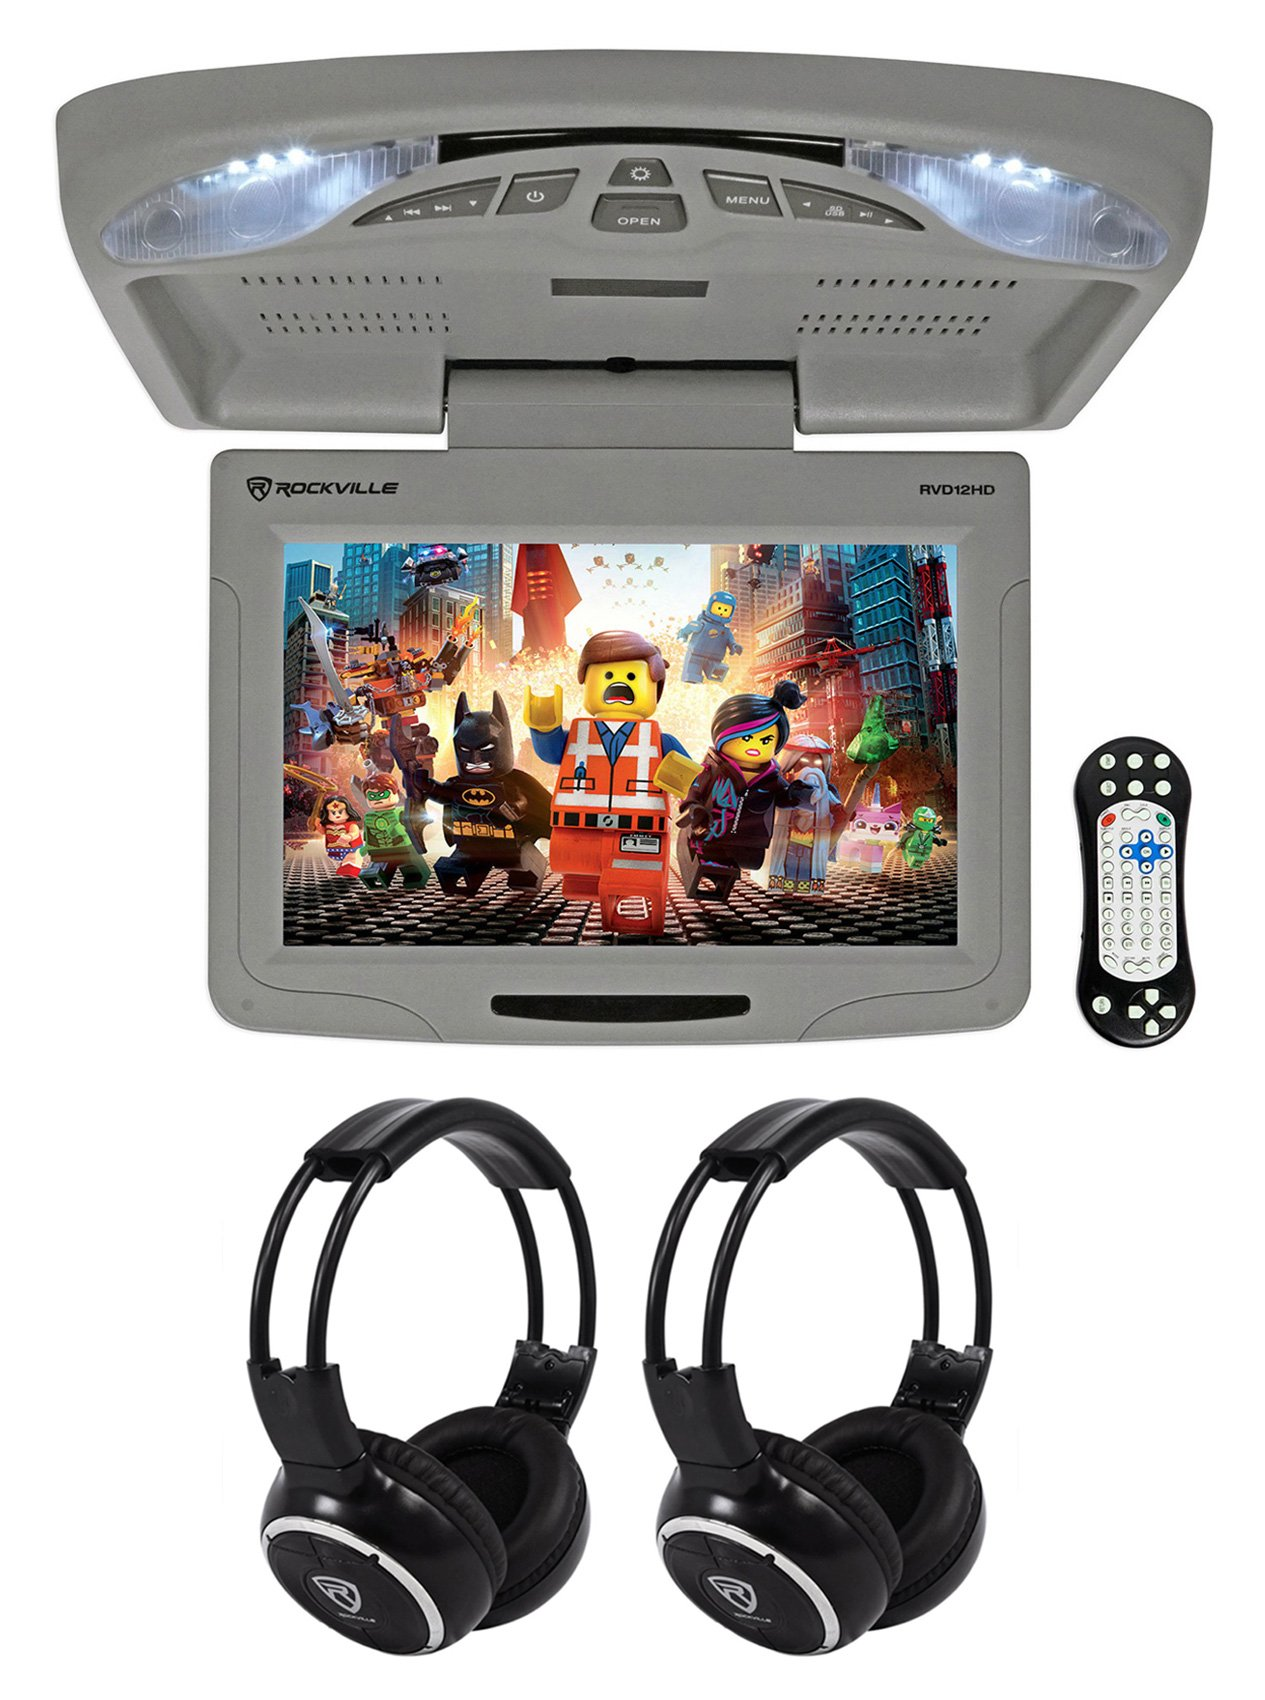 Rockville RVD12HD-GR 12'' Grey Flip Down Car Monitor DVD/USB/SD Player+Headphones by Rockville